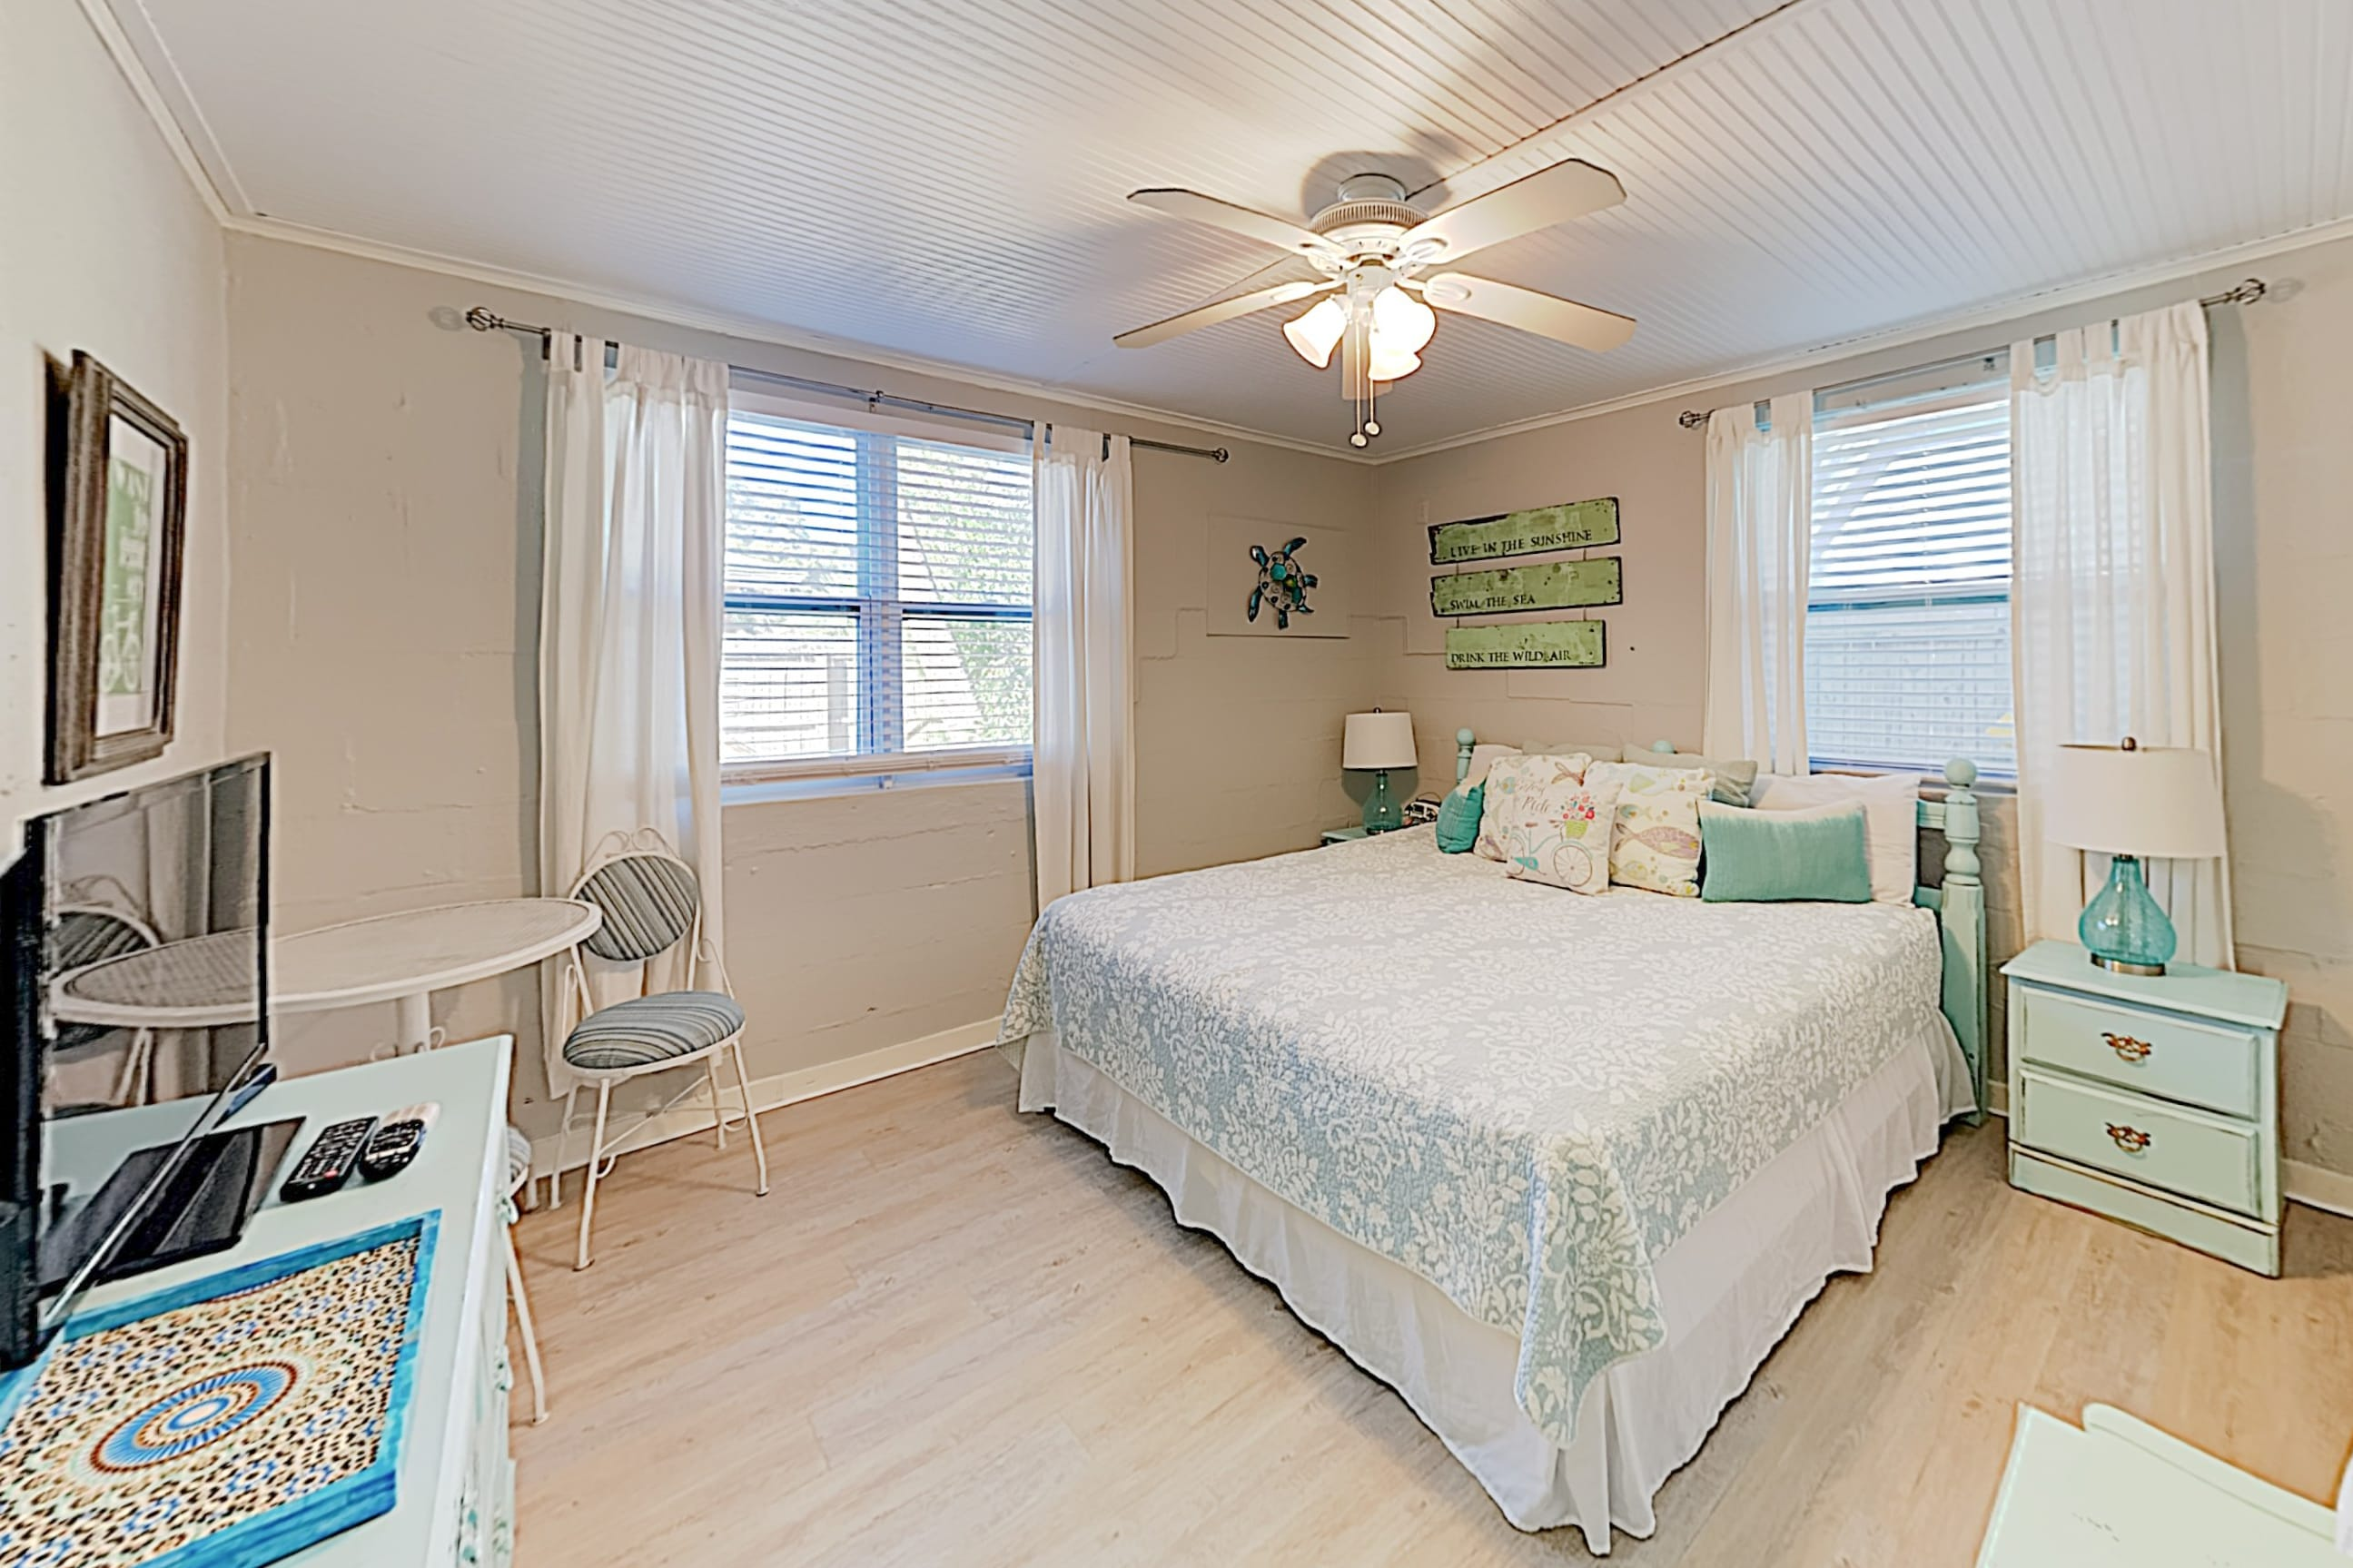 Find quiet privacy in the master bedroom, furnished with a king bed.